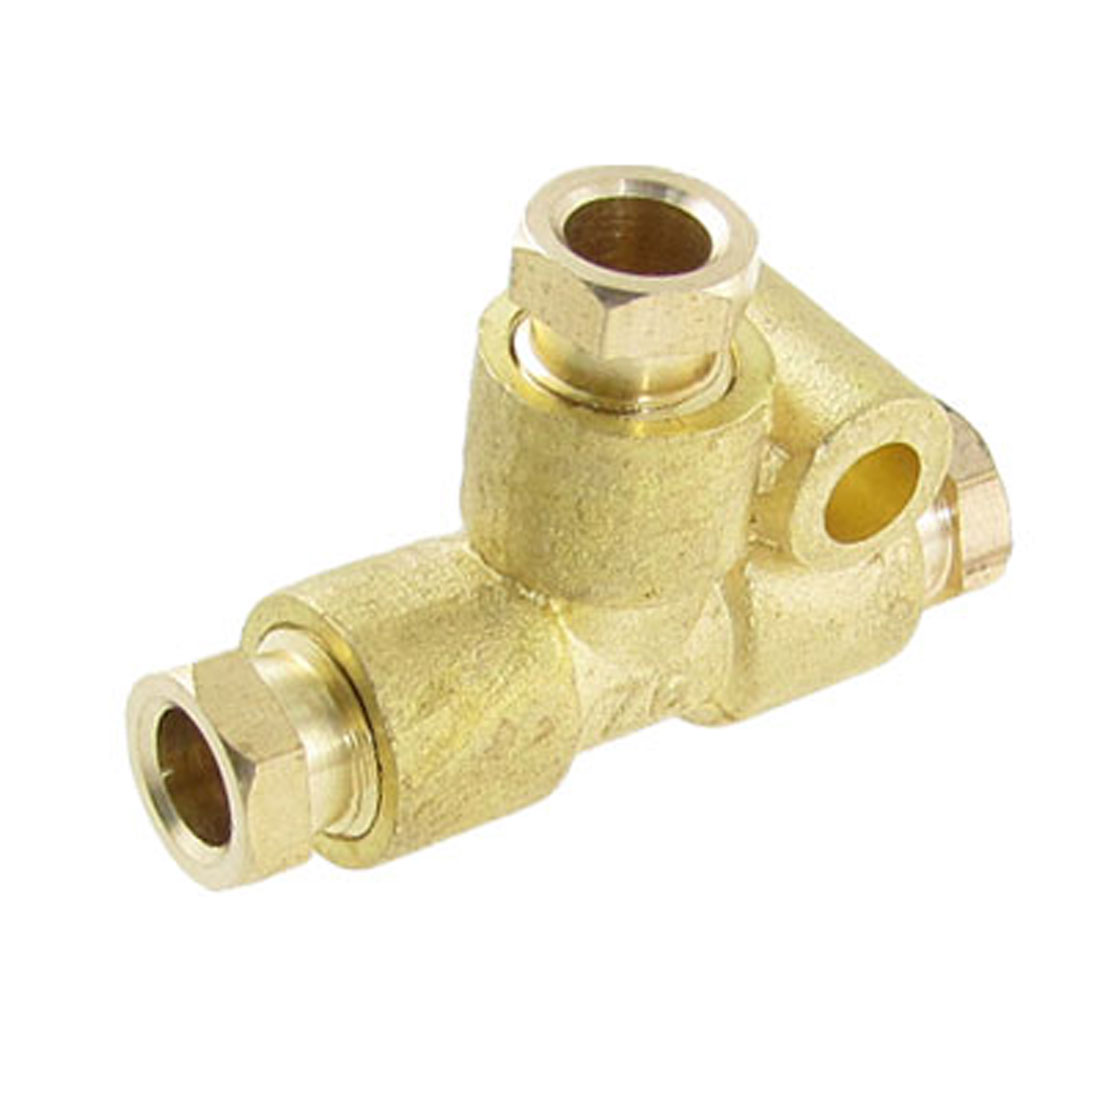 "6mm 15/64"" Brass Ferrule Compression Equal Tee Connector Gold Tone"